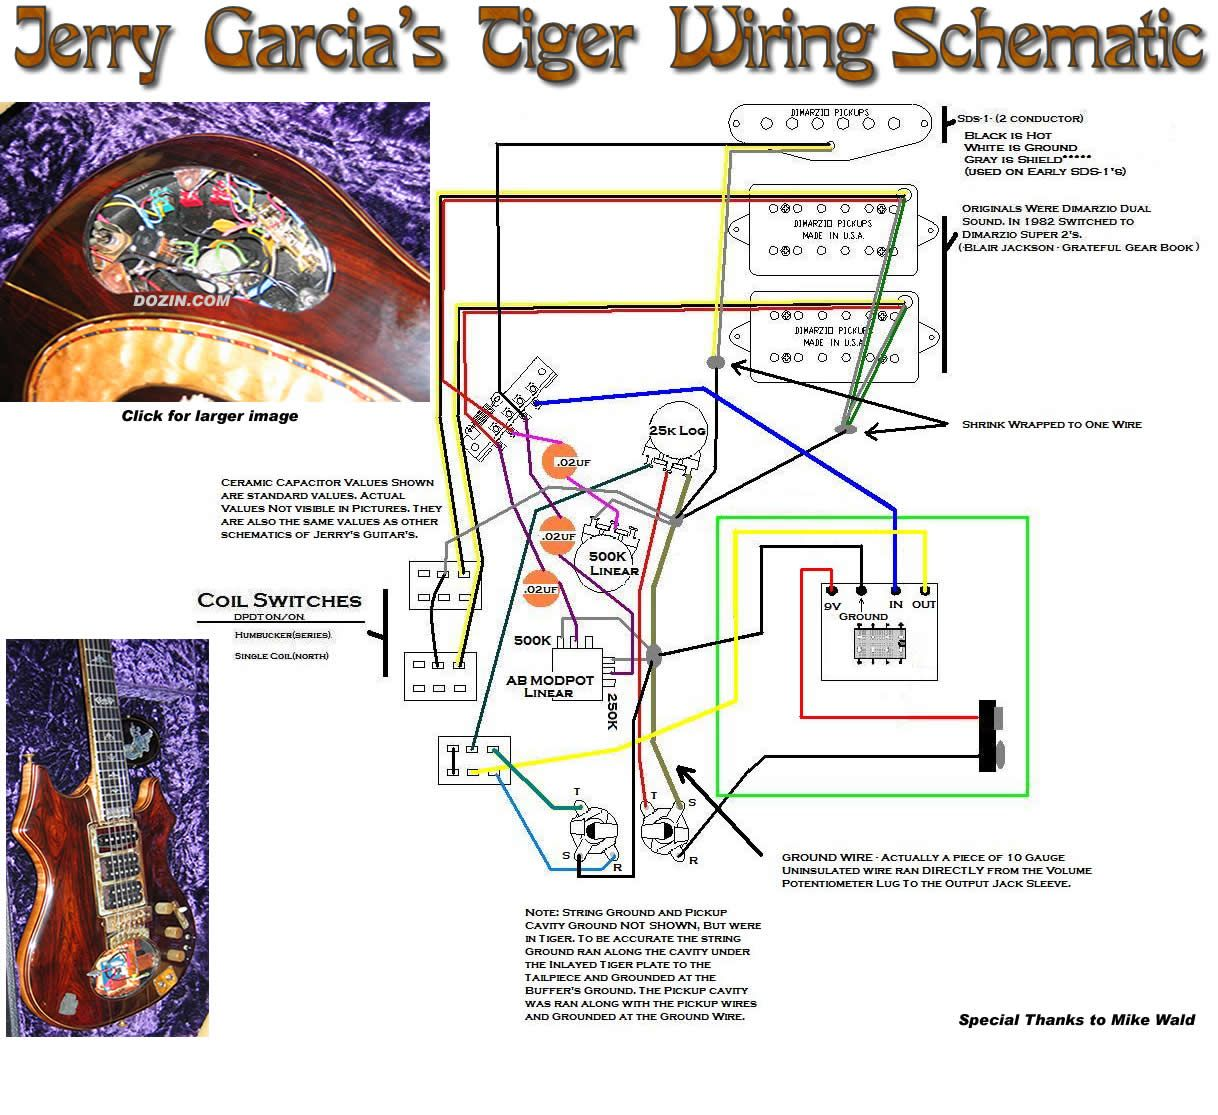 medium resolution of jerry garcia s tiger schematic mod music guitar kits telecaster guitar guitar pickups